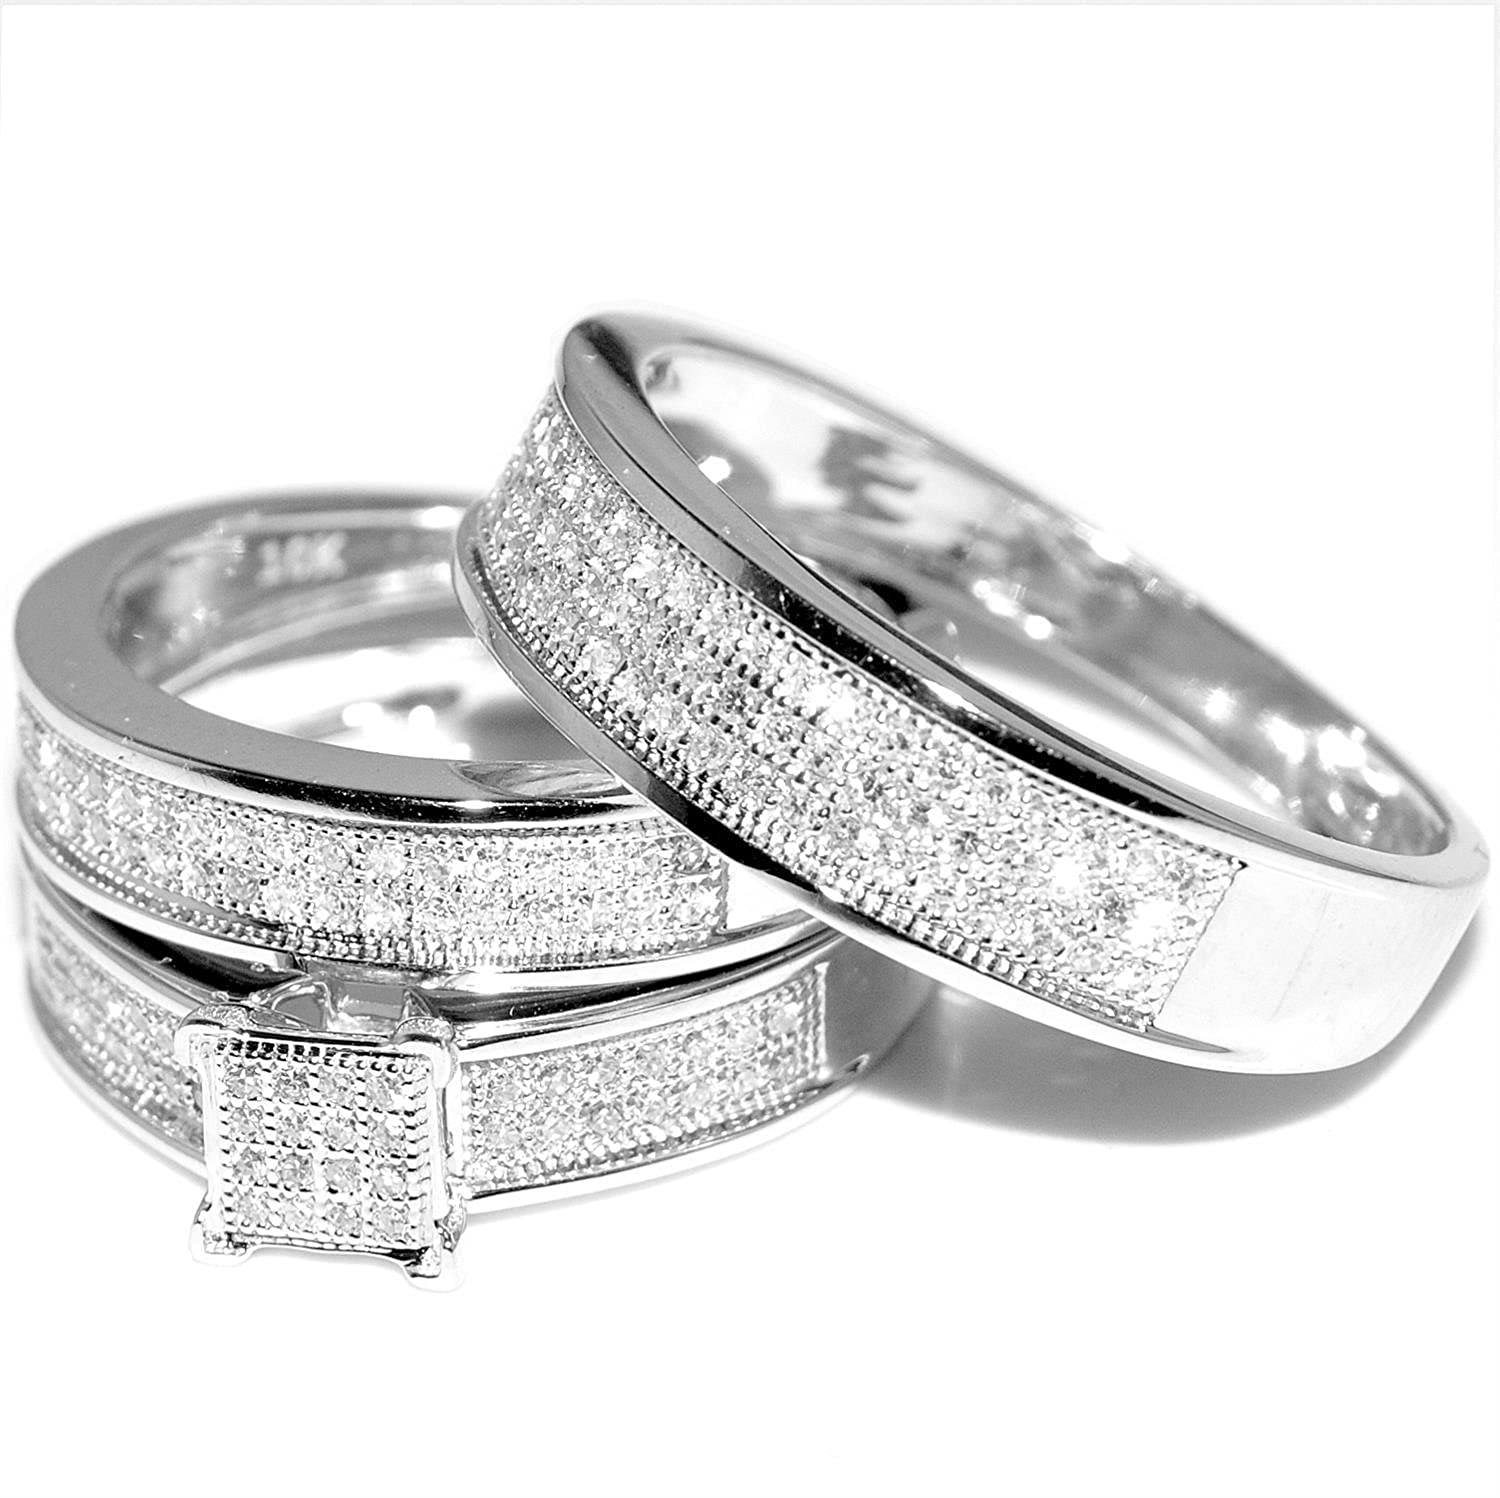 Genial White Gold Trio Wedding Set Mens Womens Wedding Rings Matching 0.40cttw  Diamond|Amazon.com